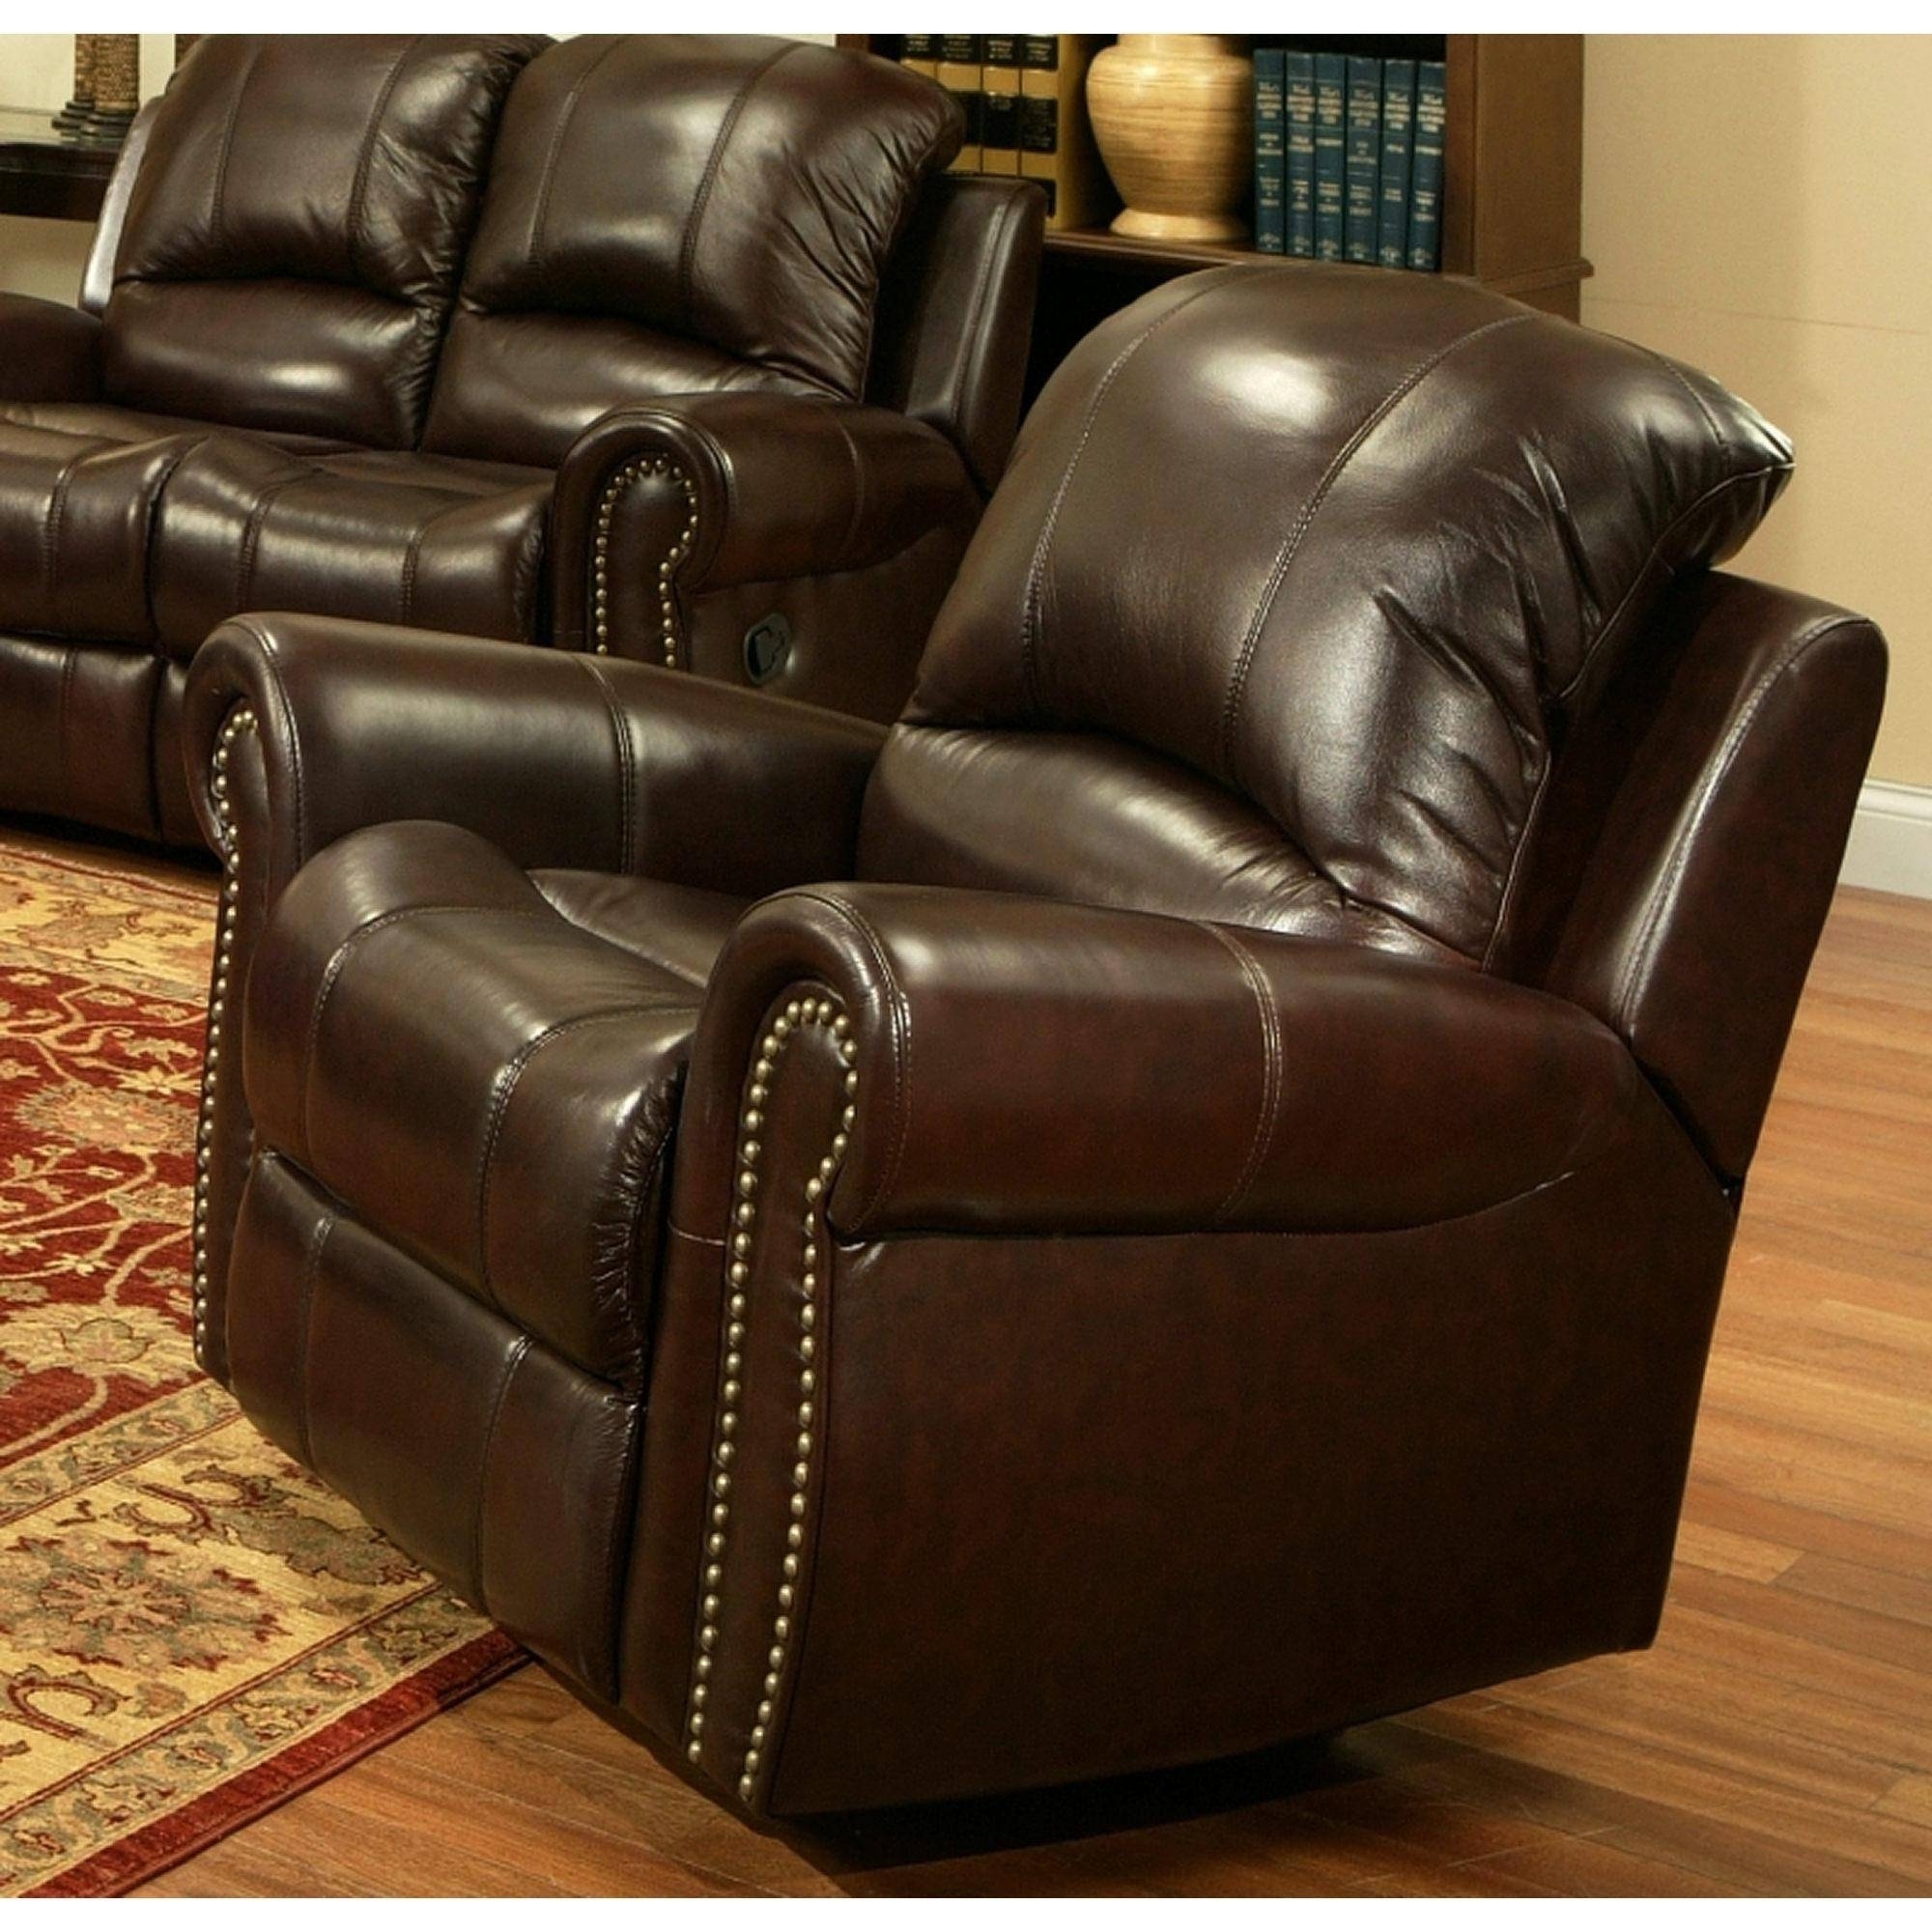 20 Best Abbyson Recliners | Sofa Ideas For Abbyson Recliners (View 8 of 15)